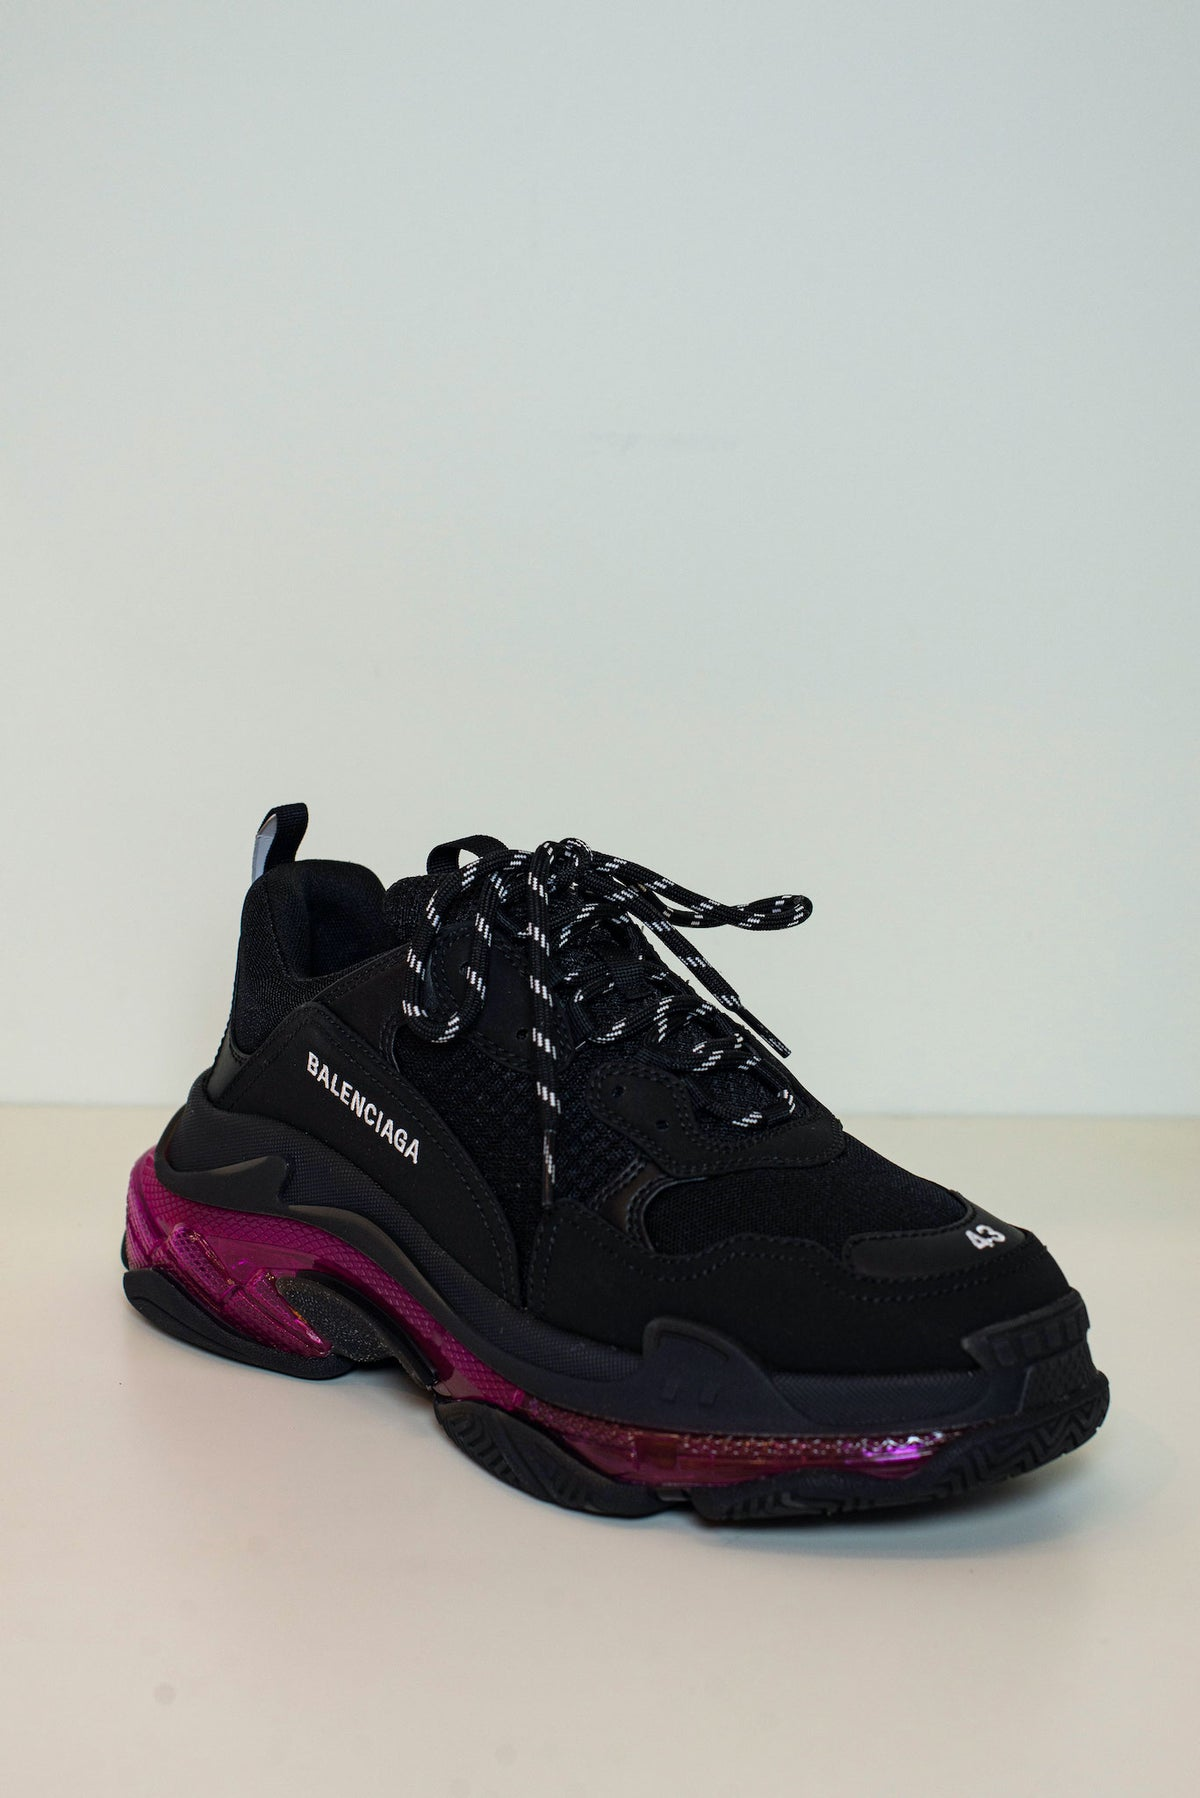 BALENCIAGA - Triple S Clear Sole M | Black/Pink Neon